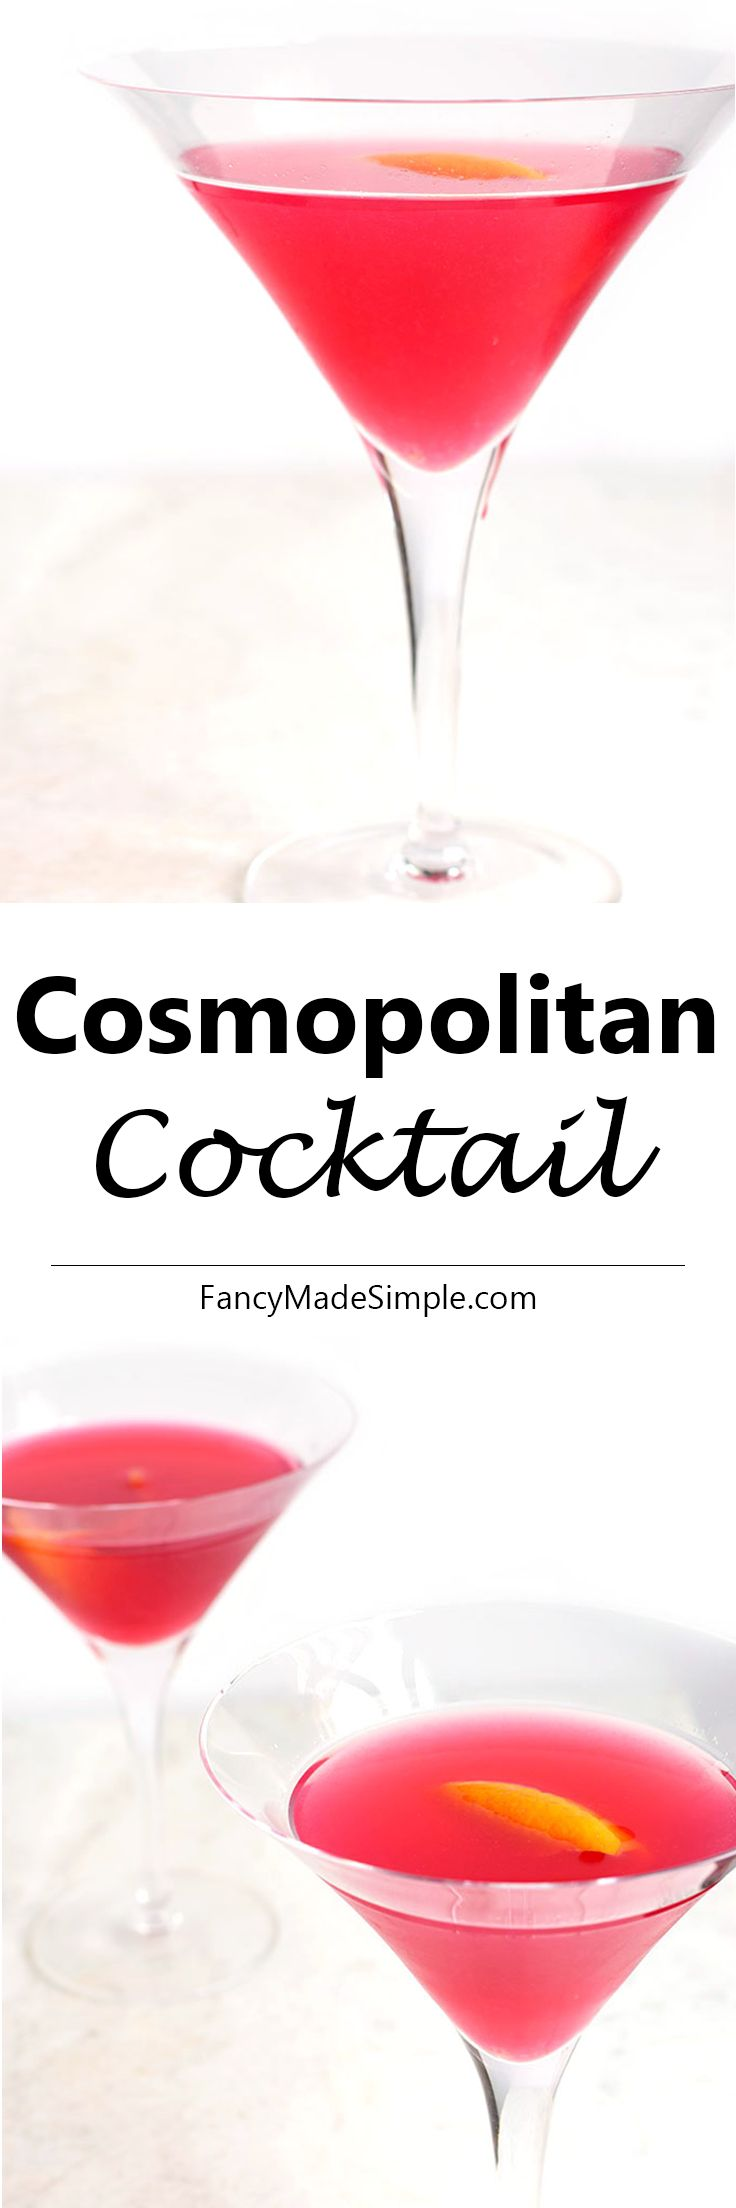 The slightly tangy, delicious and pink Cosmopolitan Cocktail recipe. This vodka drink is perfect for a girls night or bachelorette party and is served in a classy martini glass.